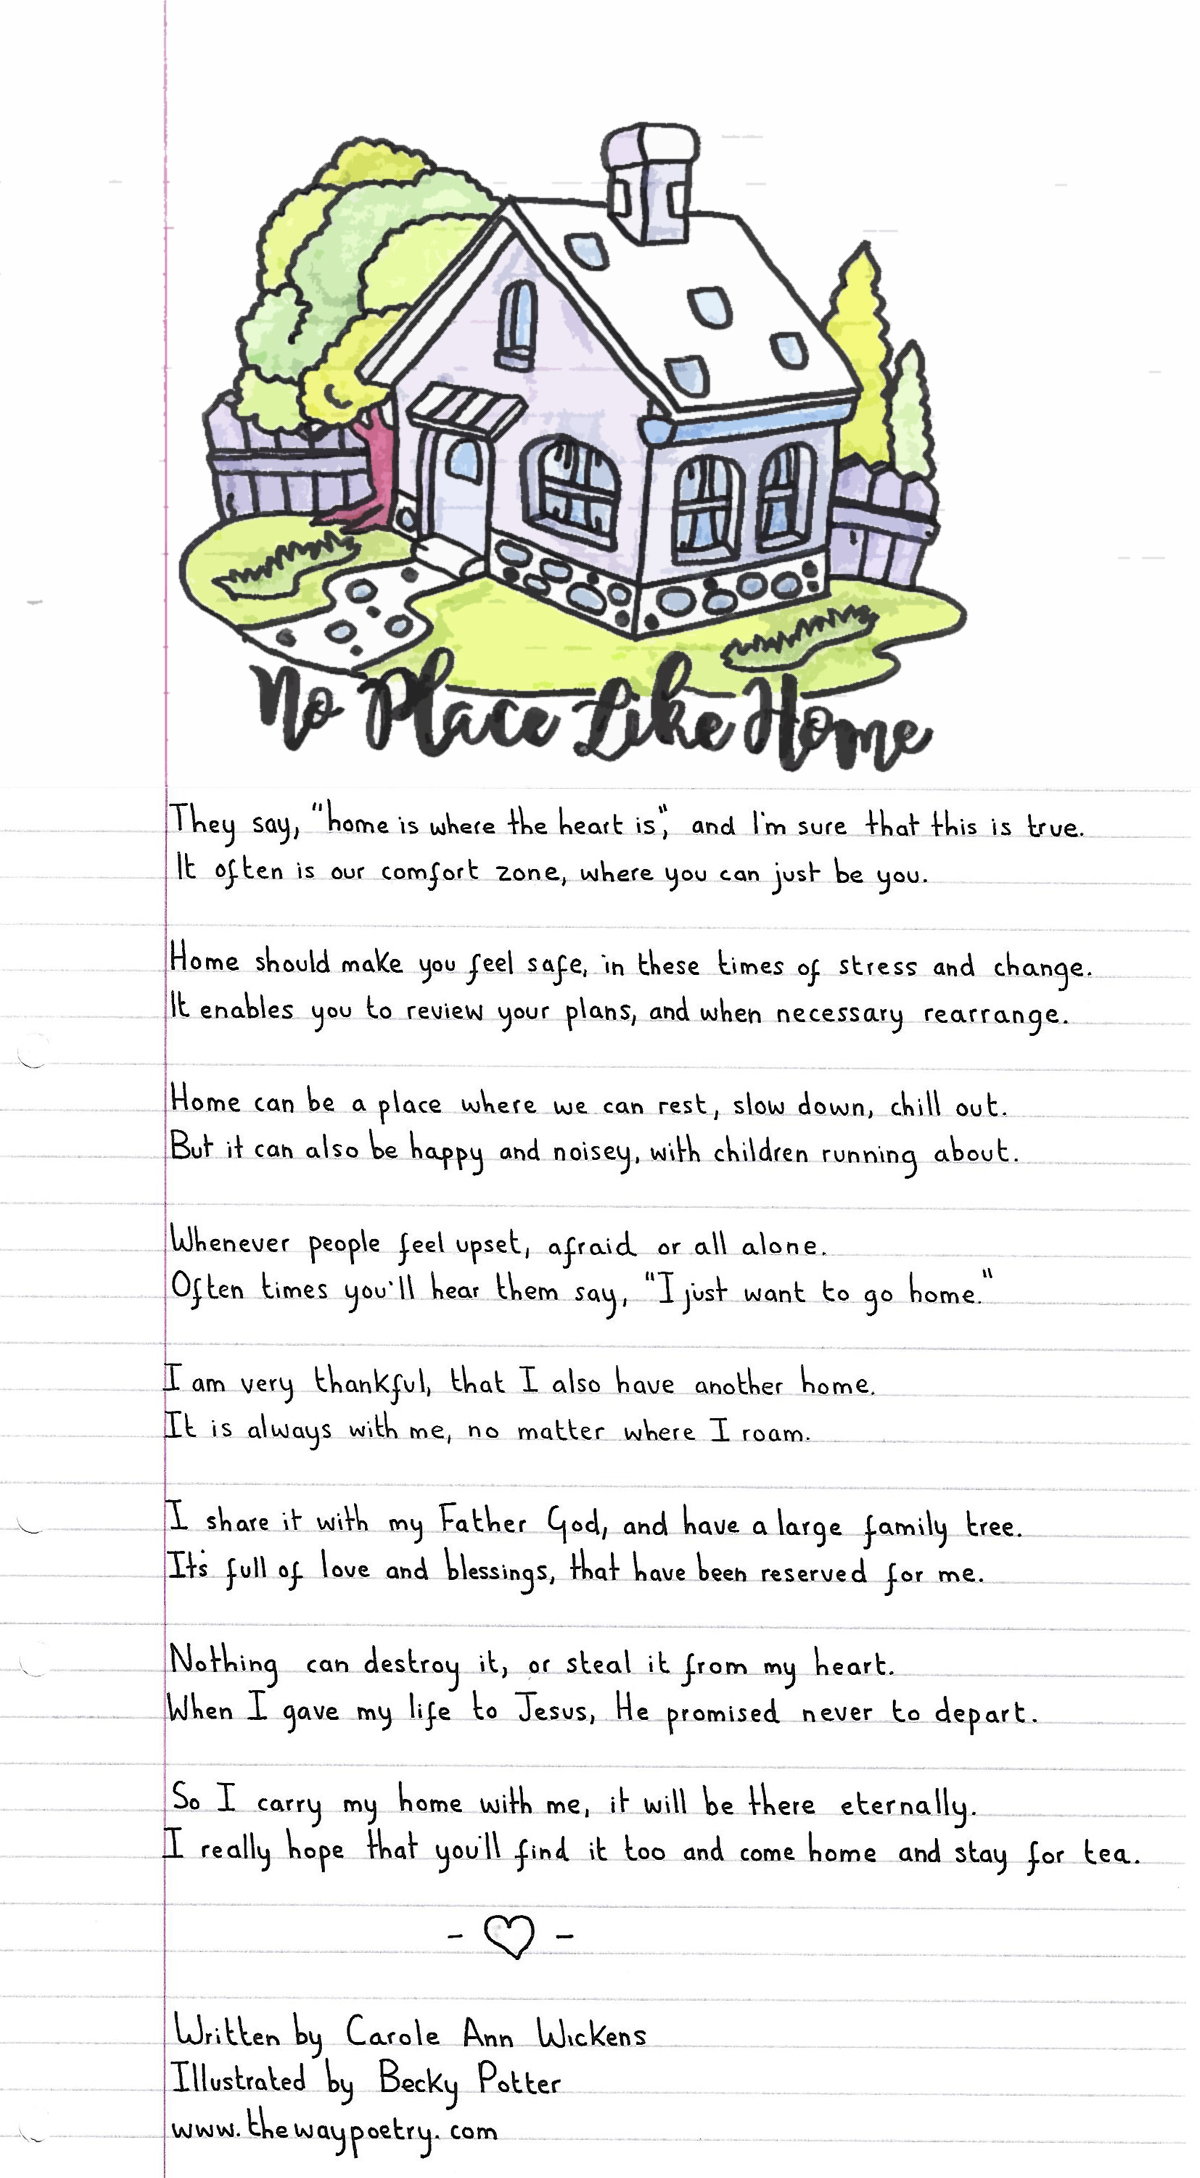 No Place Like Home by Carole Ann Wickens